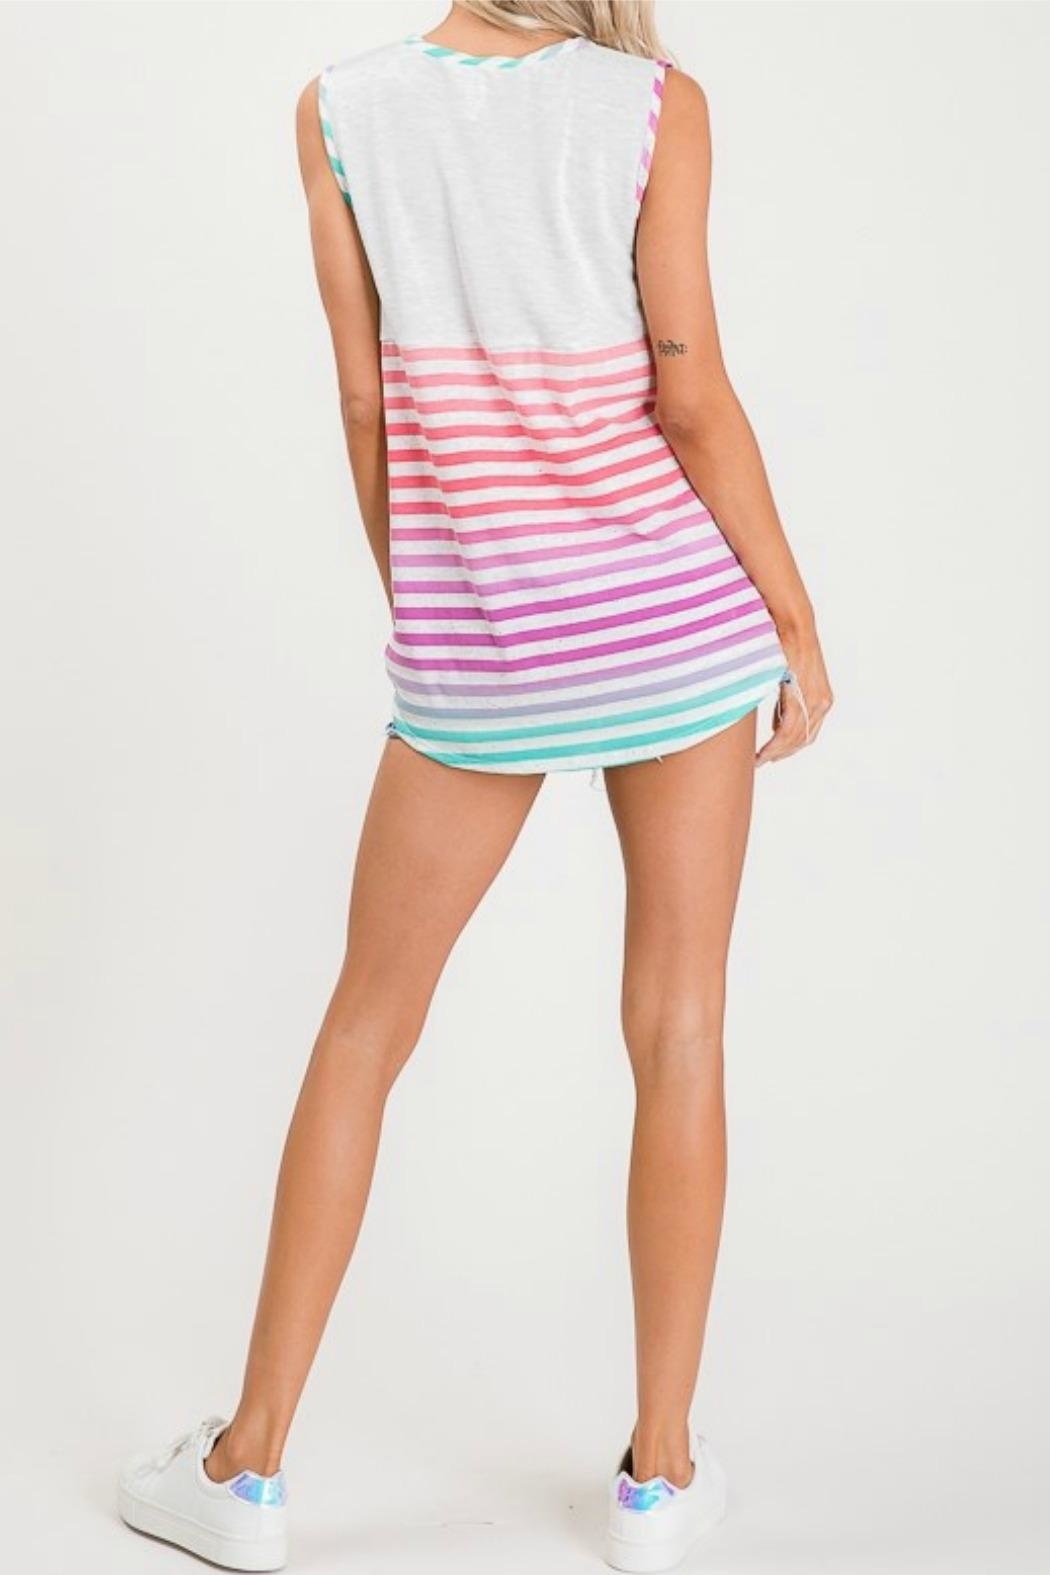 Lovely Melody Multicolor Striped Top - Back Cropped Image